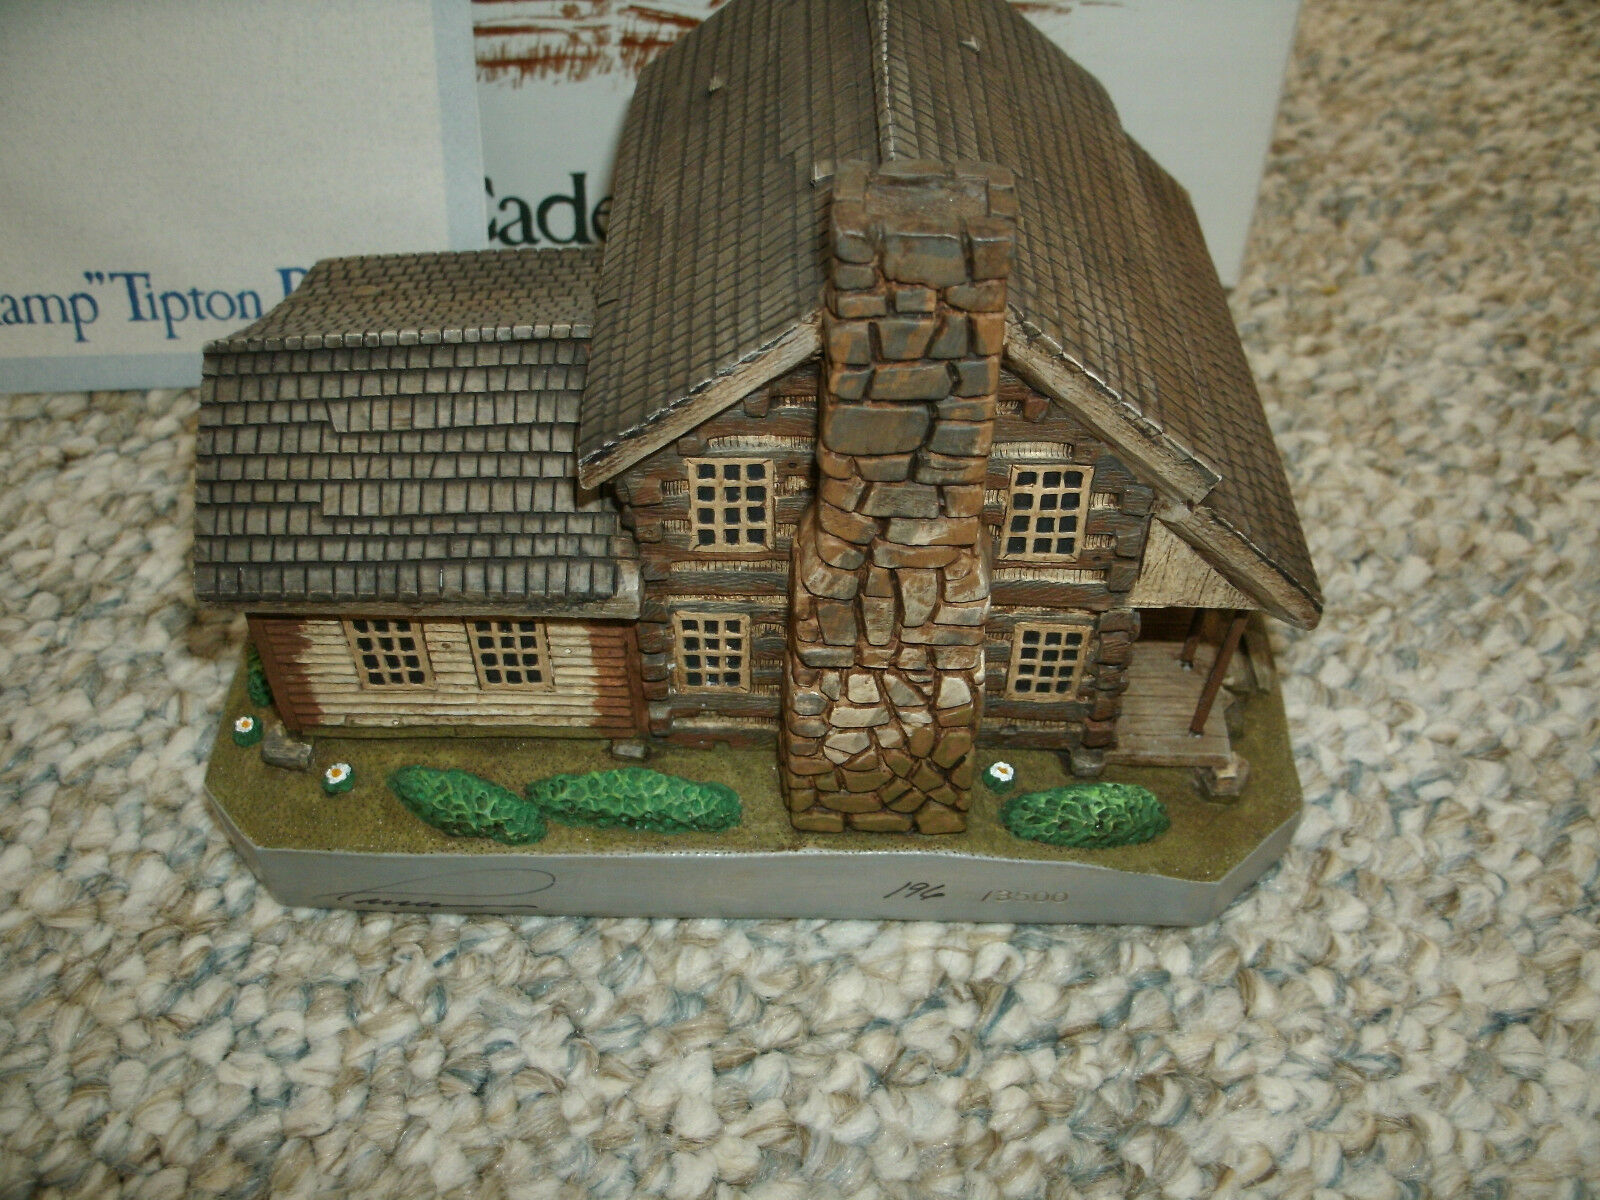 Cades Cove Series Hamp Tipton Place - National Heritage - Mint in Box